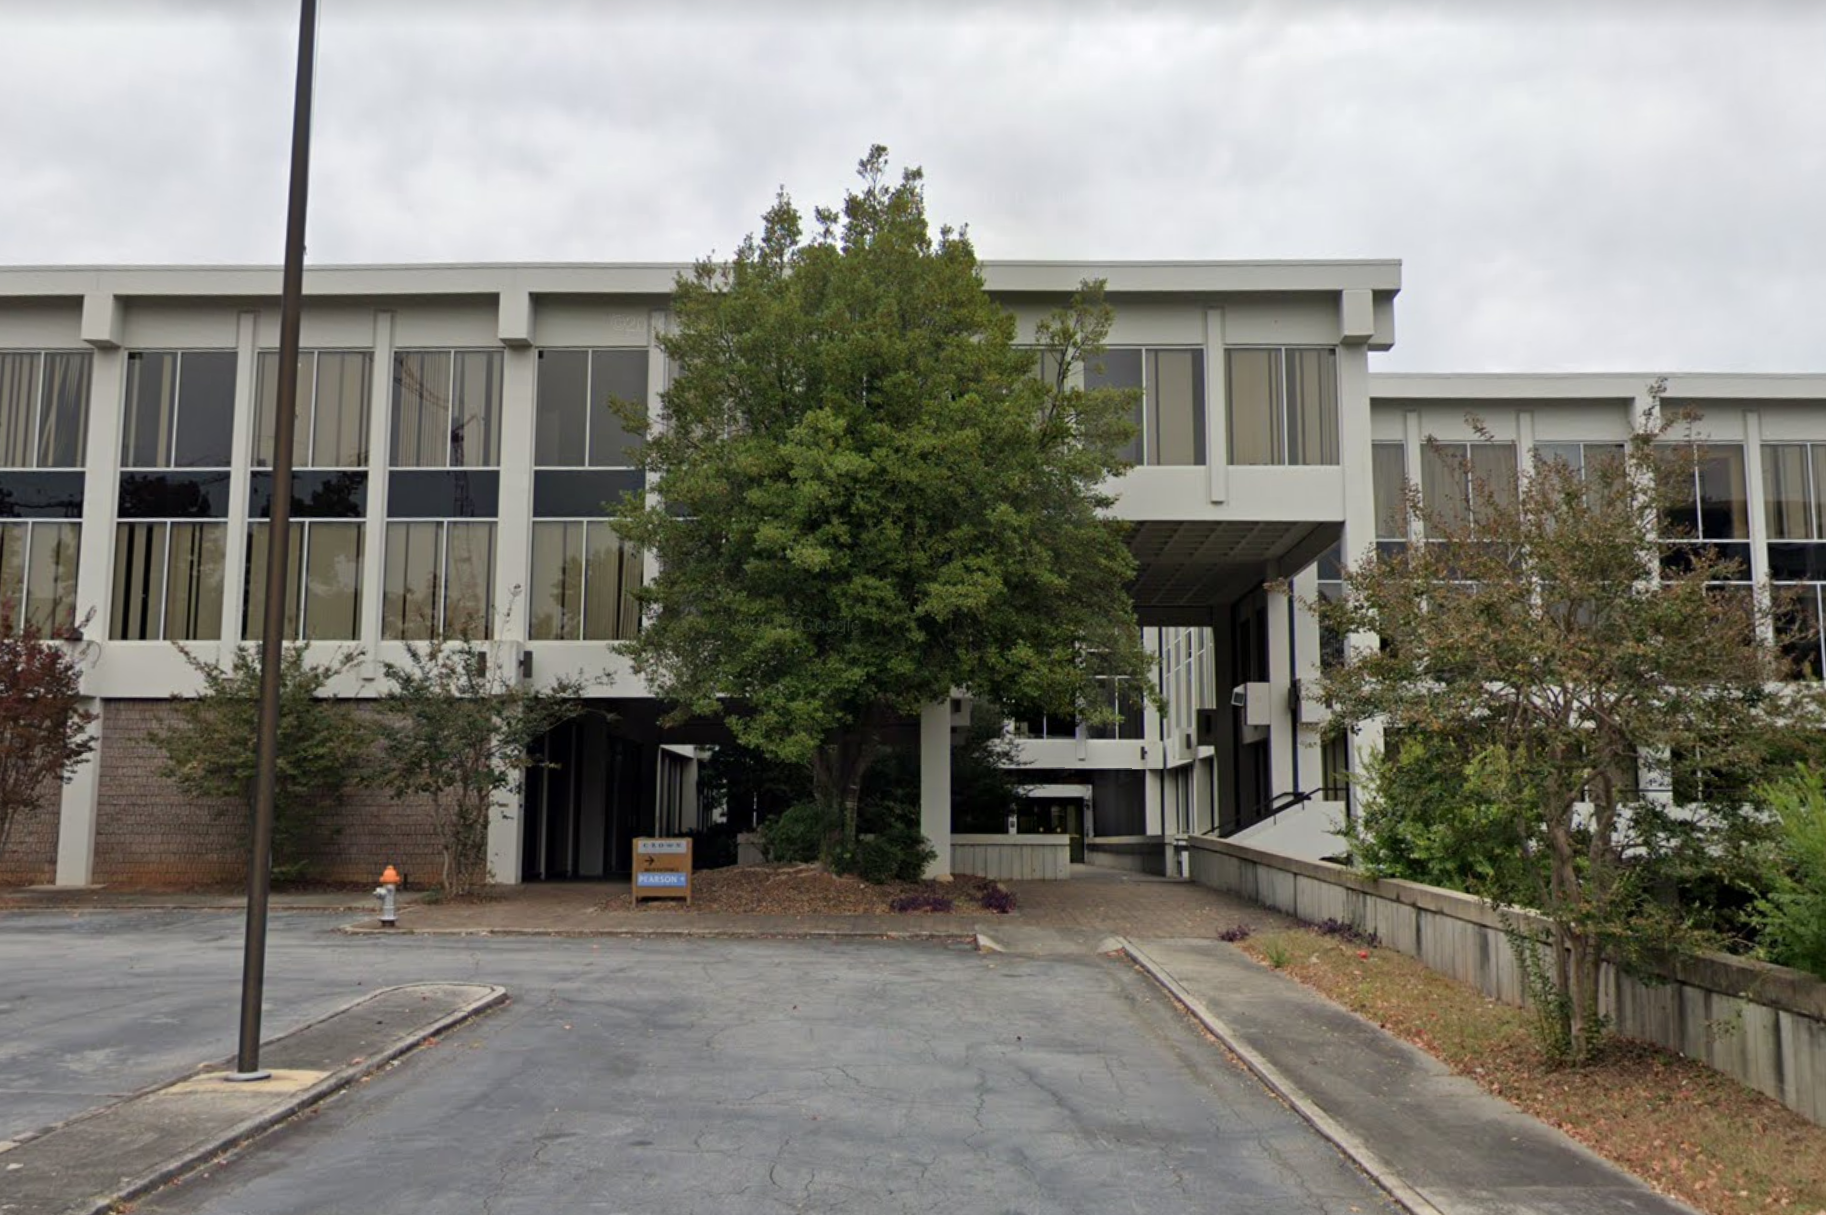 A plain three-story office building with a tree out front.